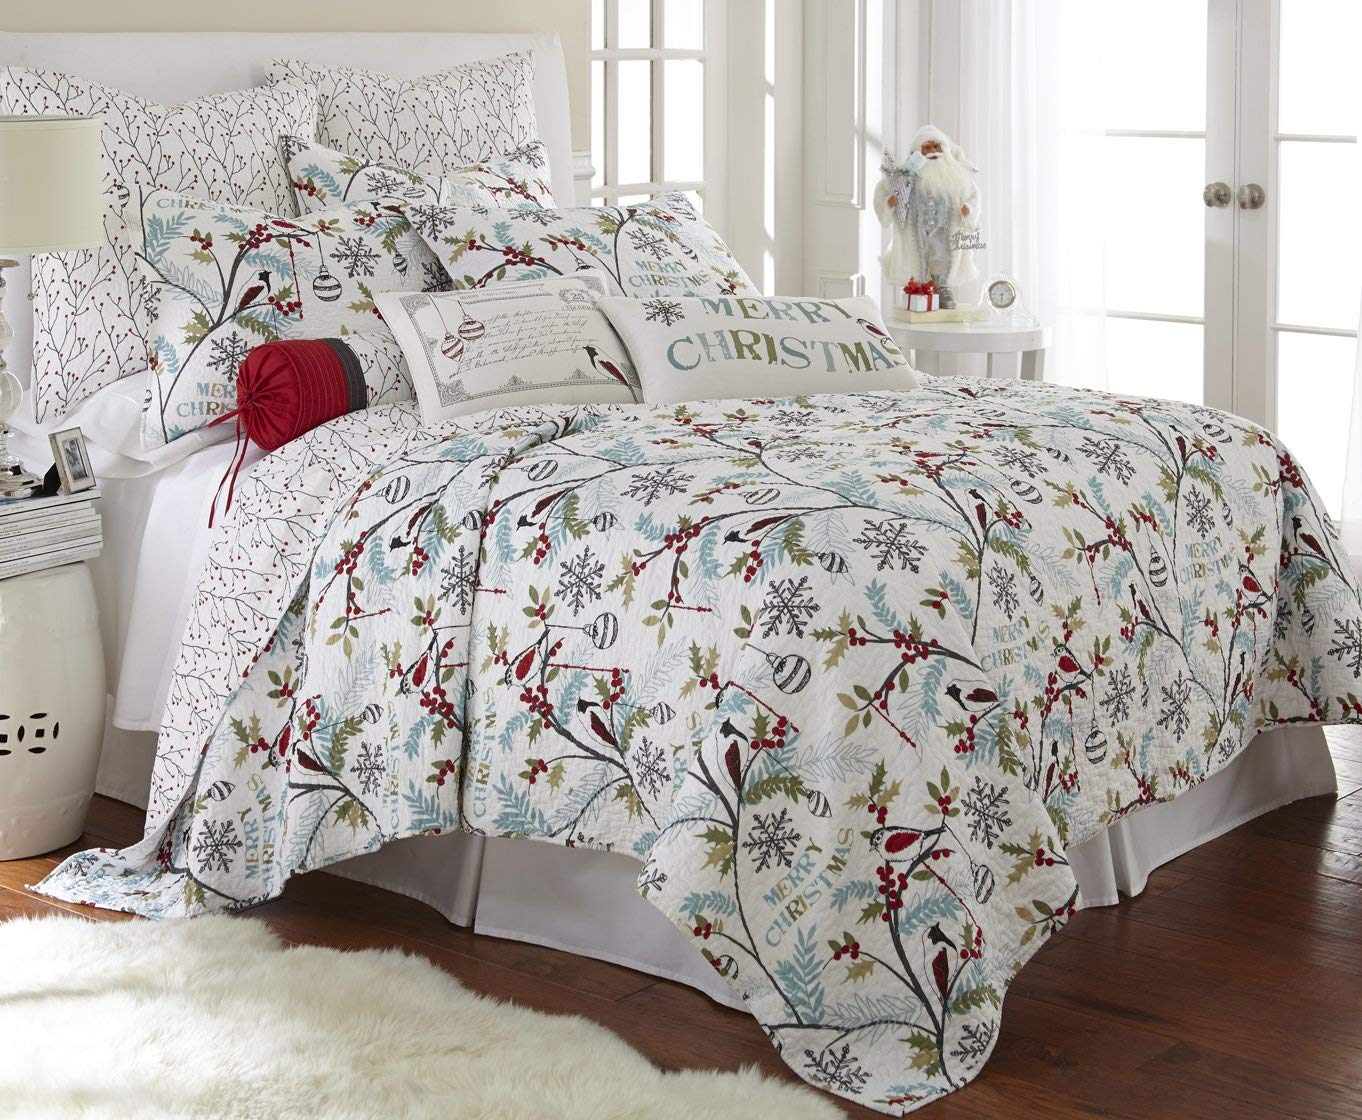 Levtex Christmas Quilt Set - Christmas Bed Quits